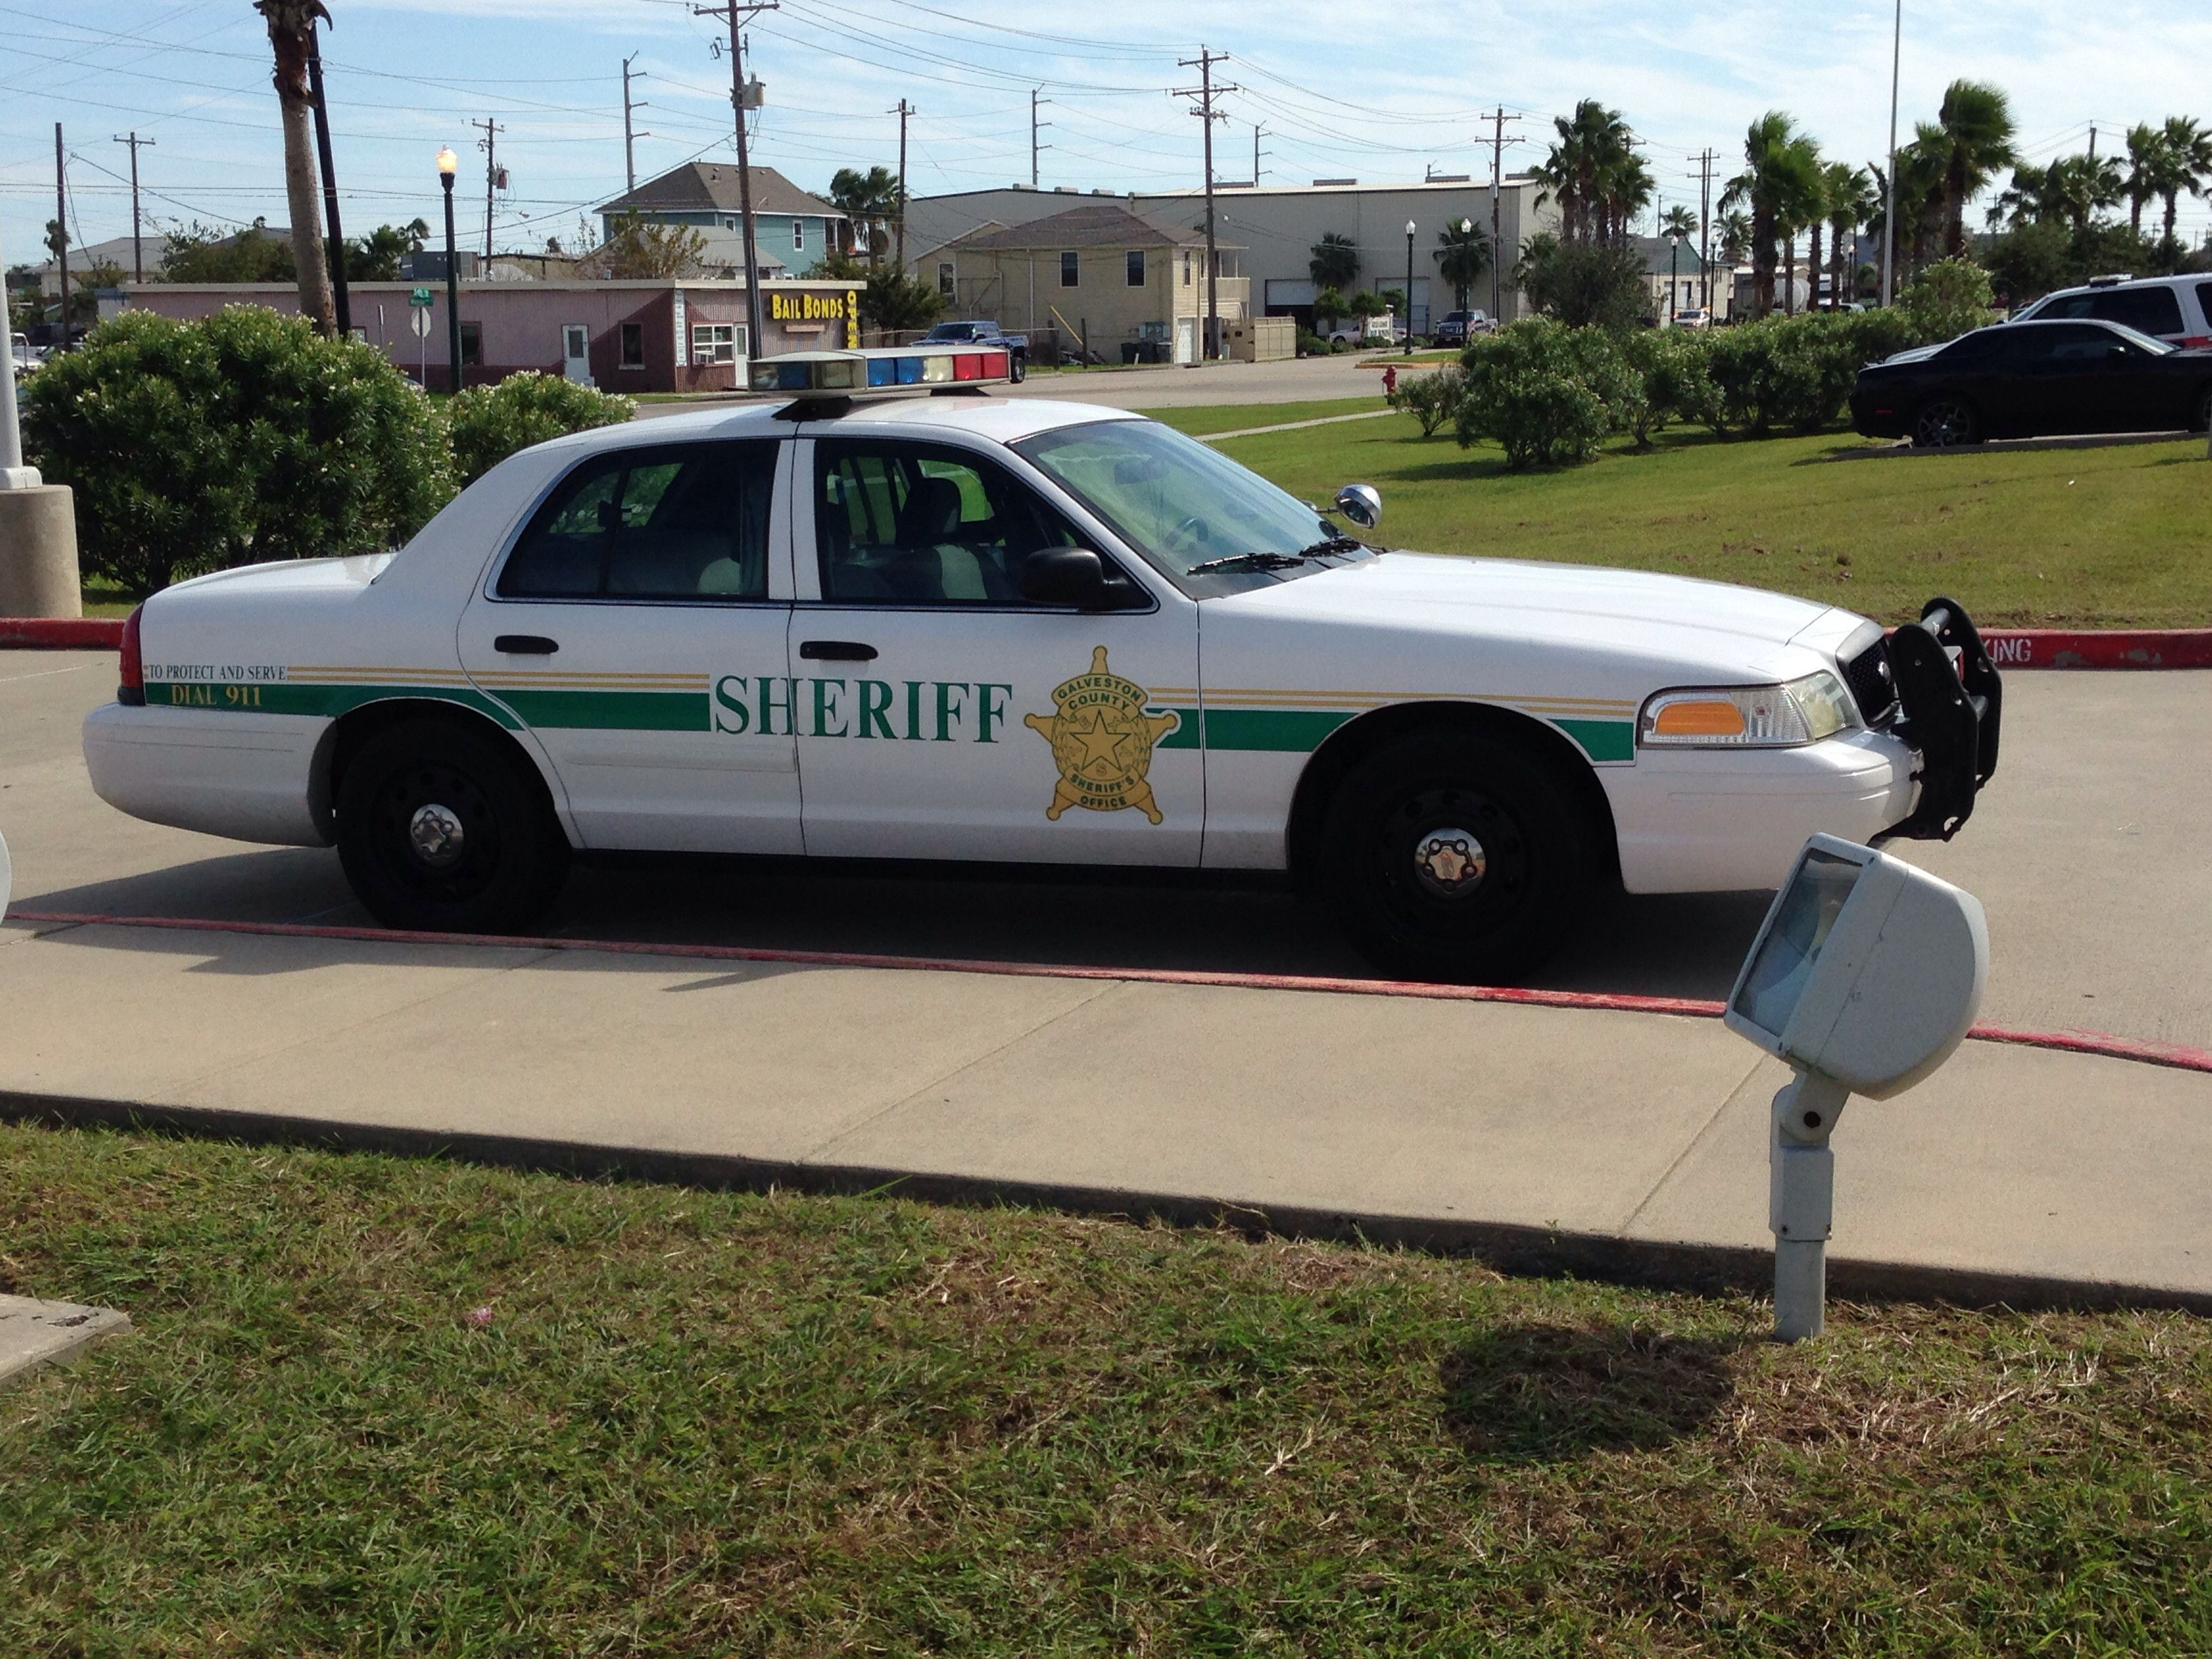 Galveston County Sheriff S Office Ford Crown Victoria Police Vehicles Cars